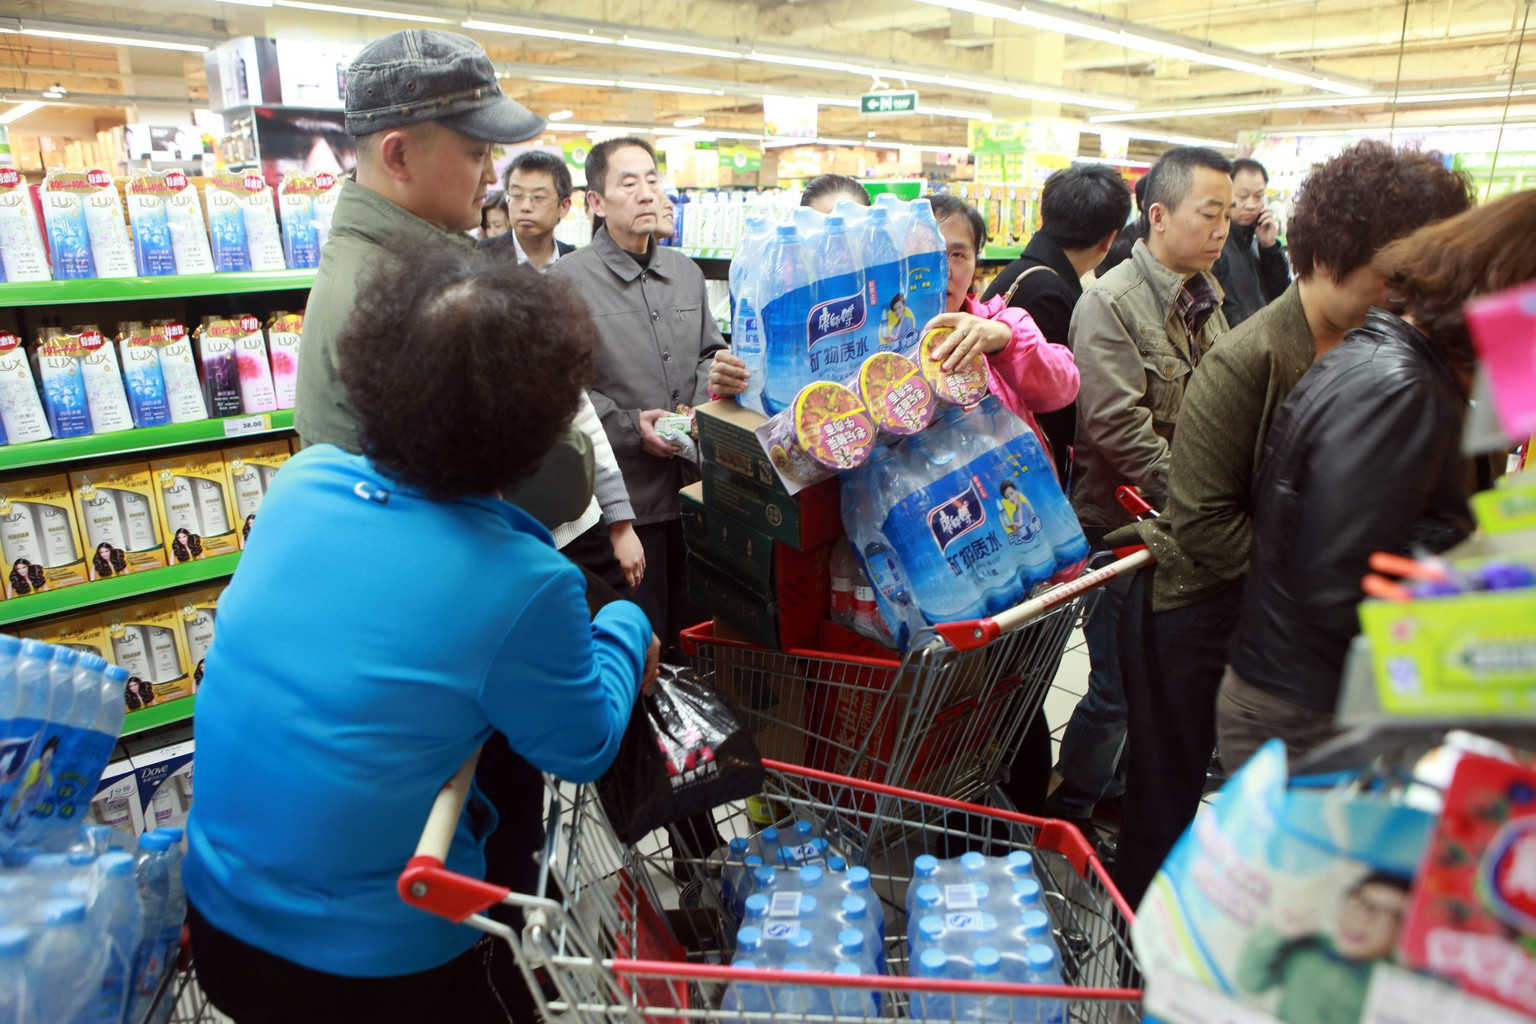 epa04164352 People buy bottled water in a supermarket in Lanzhou, in the north-western China's Gansu province, 11 April 2014 after the government warned citizens not to drink the tap water as a source close to a petrochemical plant was contaminated. People in panic have bought out almost all the bottled water in the city shortly after the notice. Investigators identified a crude oil pipeline run by state-owned China National Petroleum Corp as the source for polluting the water supply in a north-western city, state media reported 12 April.  EPA/LI LI CHINA OUT